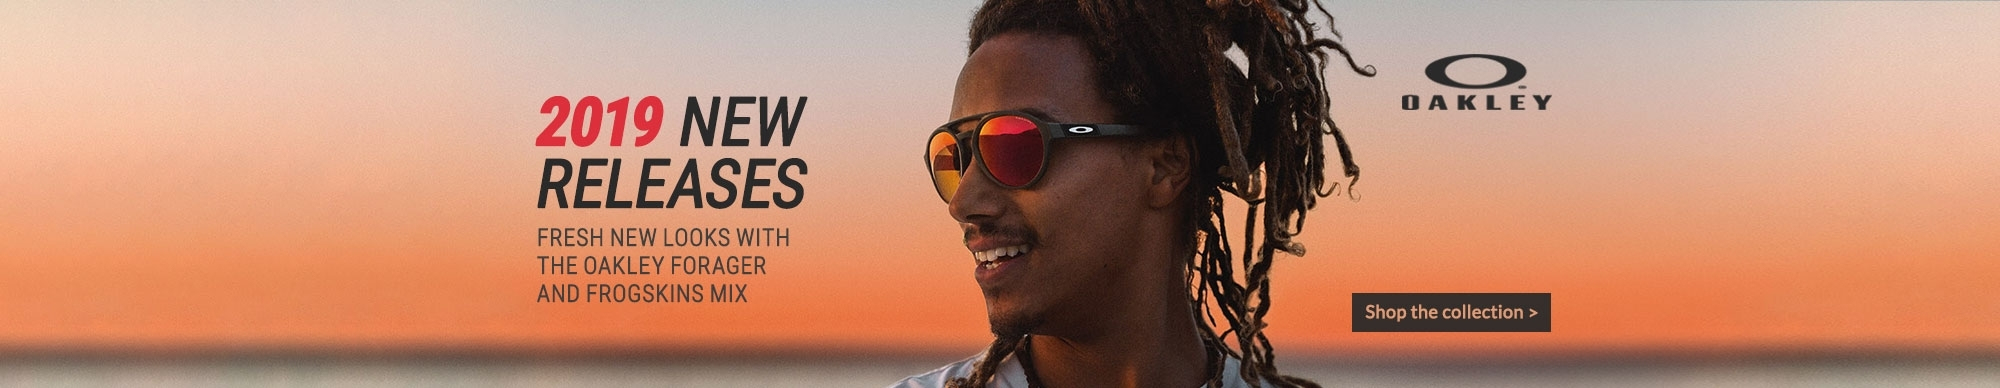 Oakley New Releases March 2019